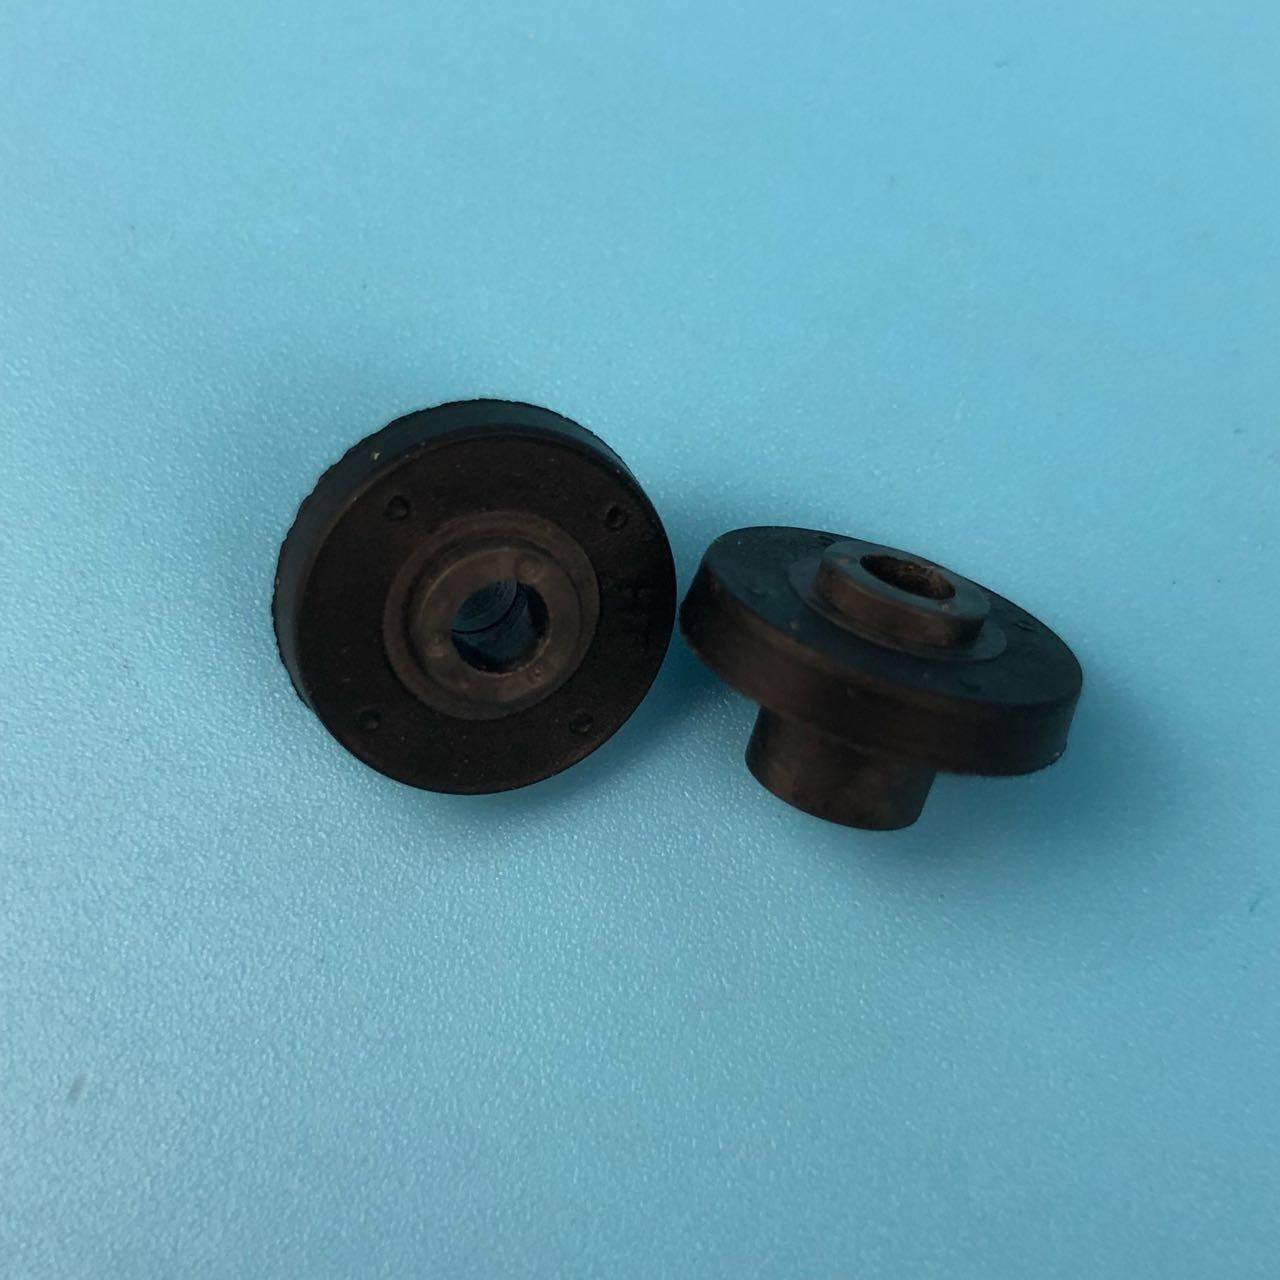 Diebold Opteva Parts 49016971000f ATM Machine Parts Diebold Take Away Wheel With High Performance 49-016971-000f Manufactures